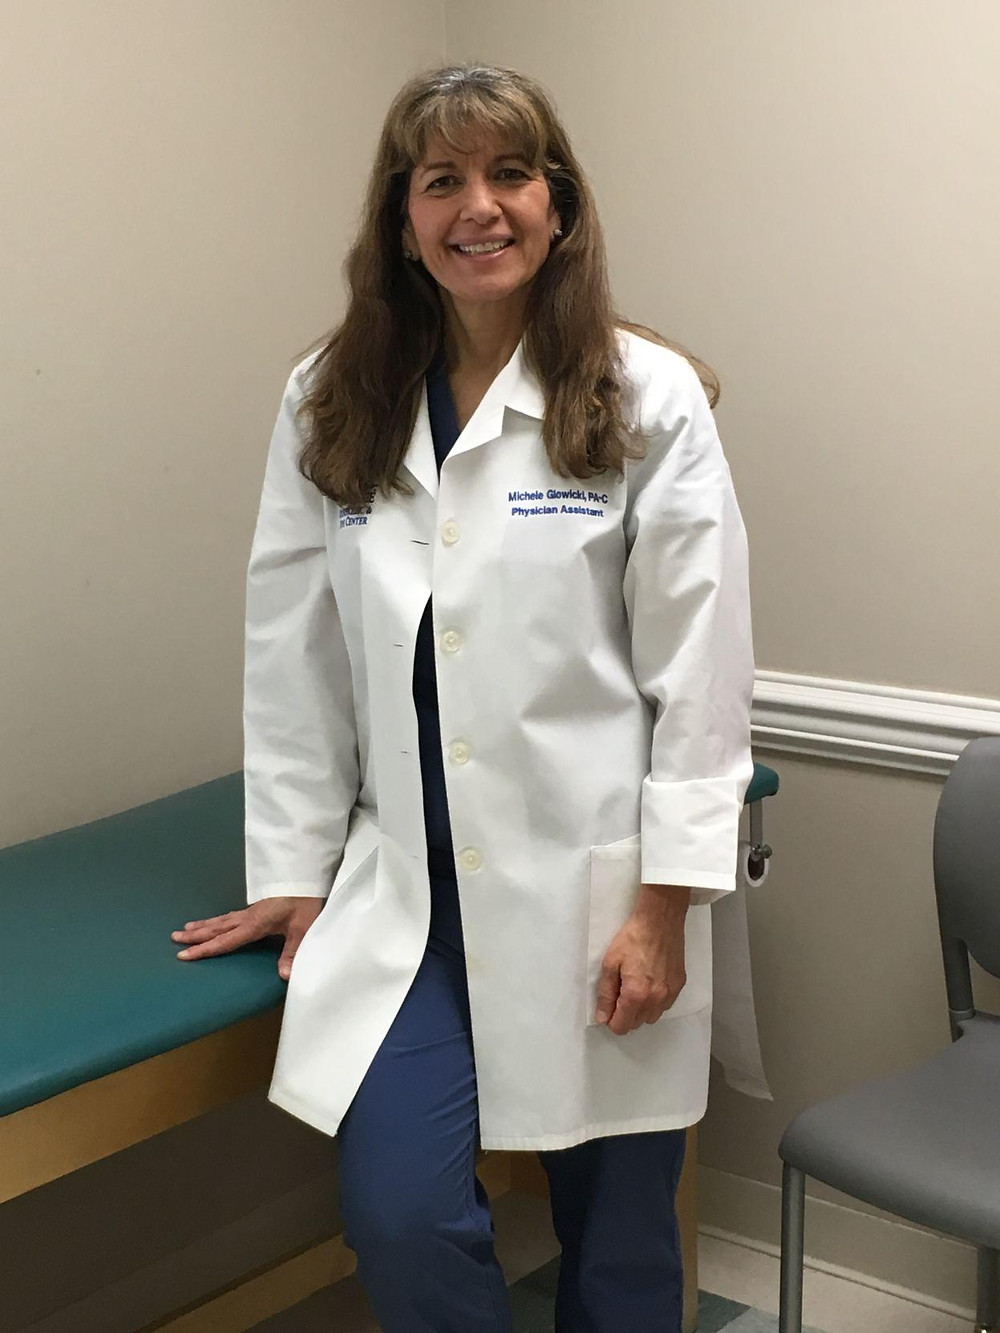 Blue Ridge Physician Assistant, Michele Glowicki, smiling and standing in front of an exam table